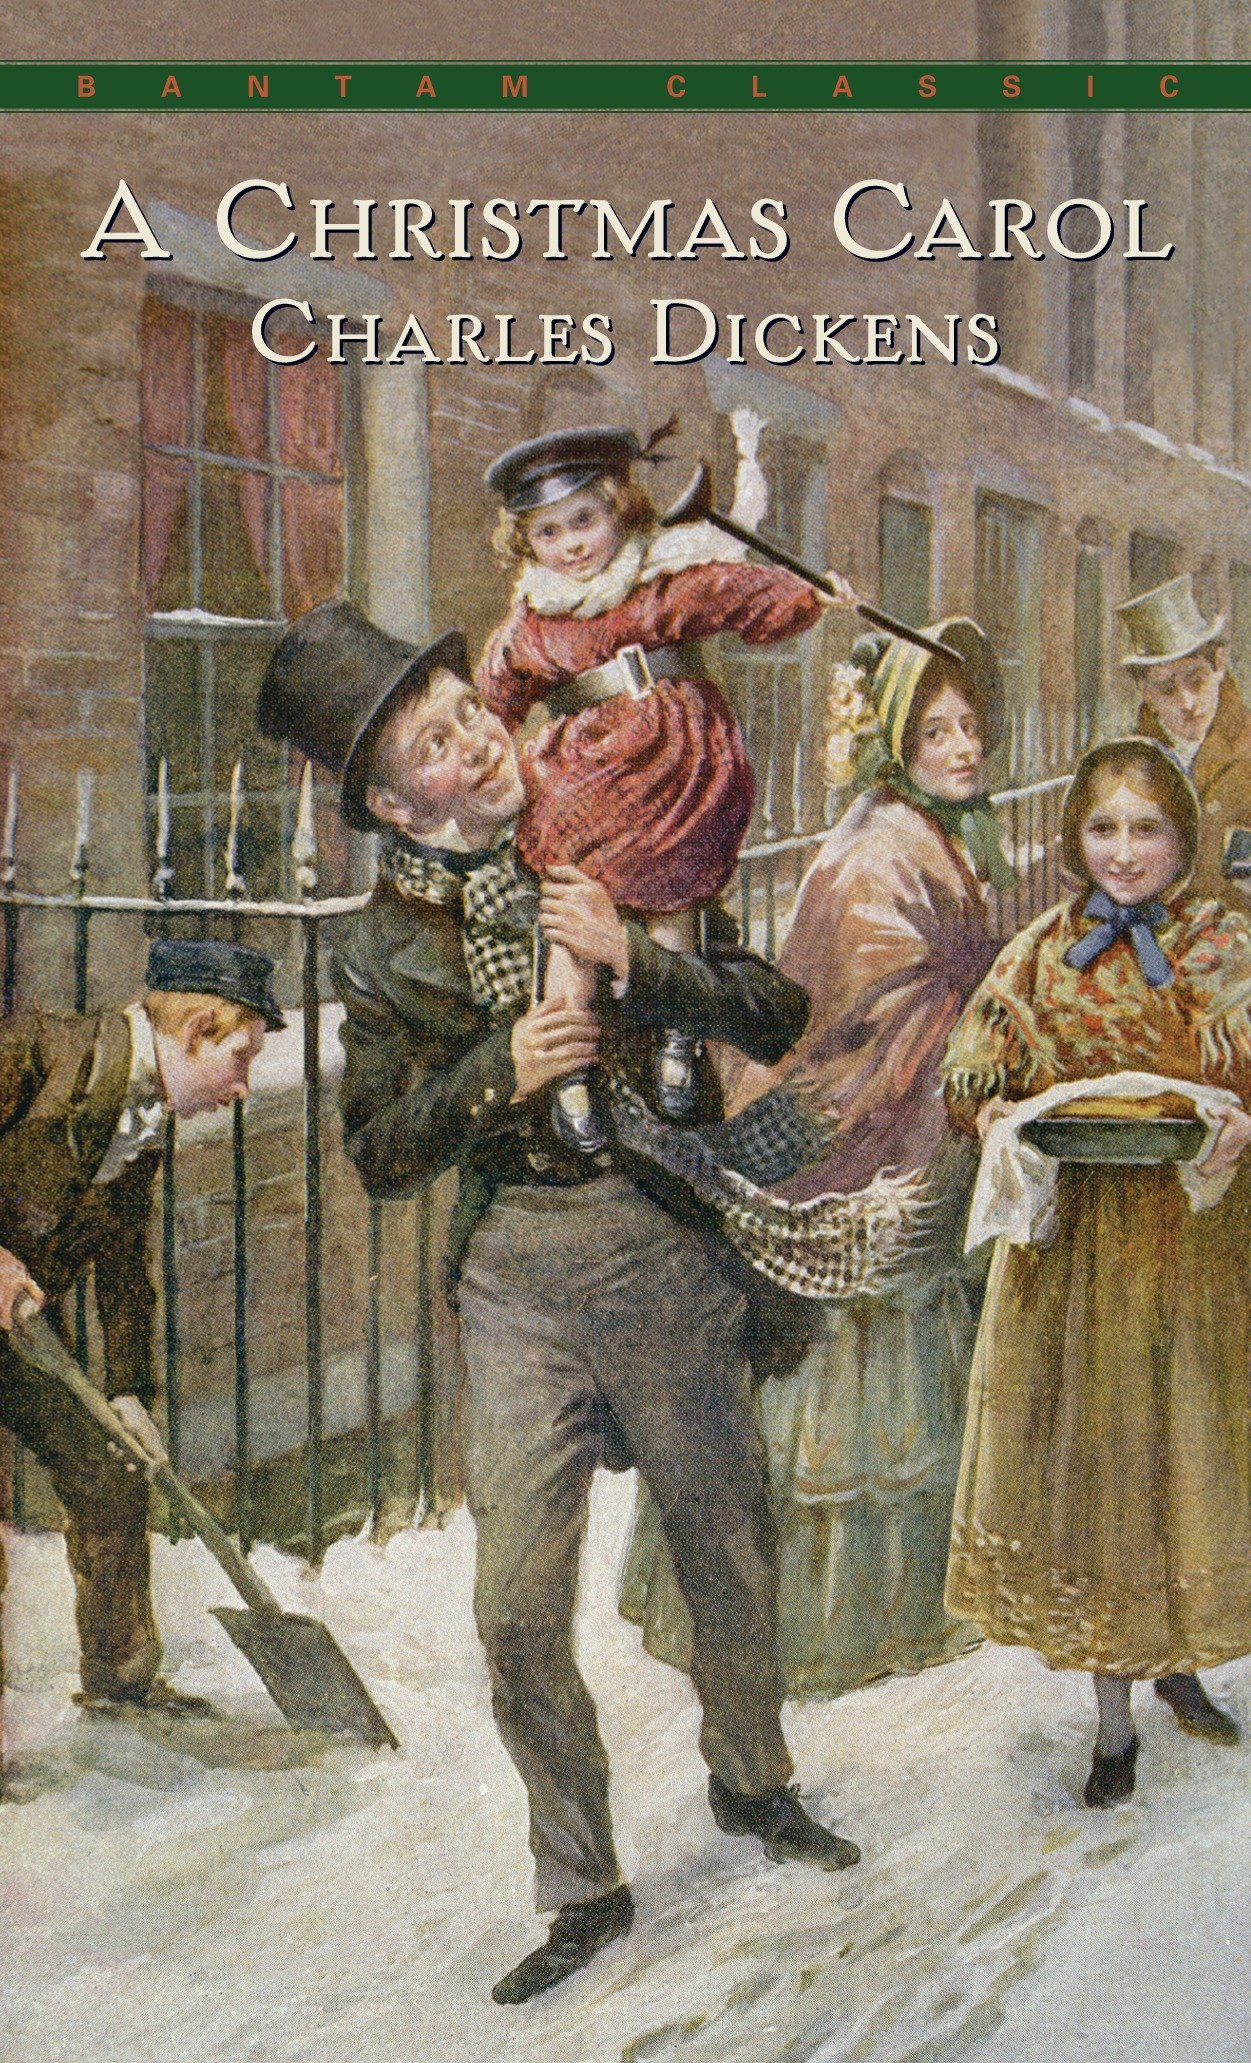 Image result for a christmas carol charles dickens book cover